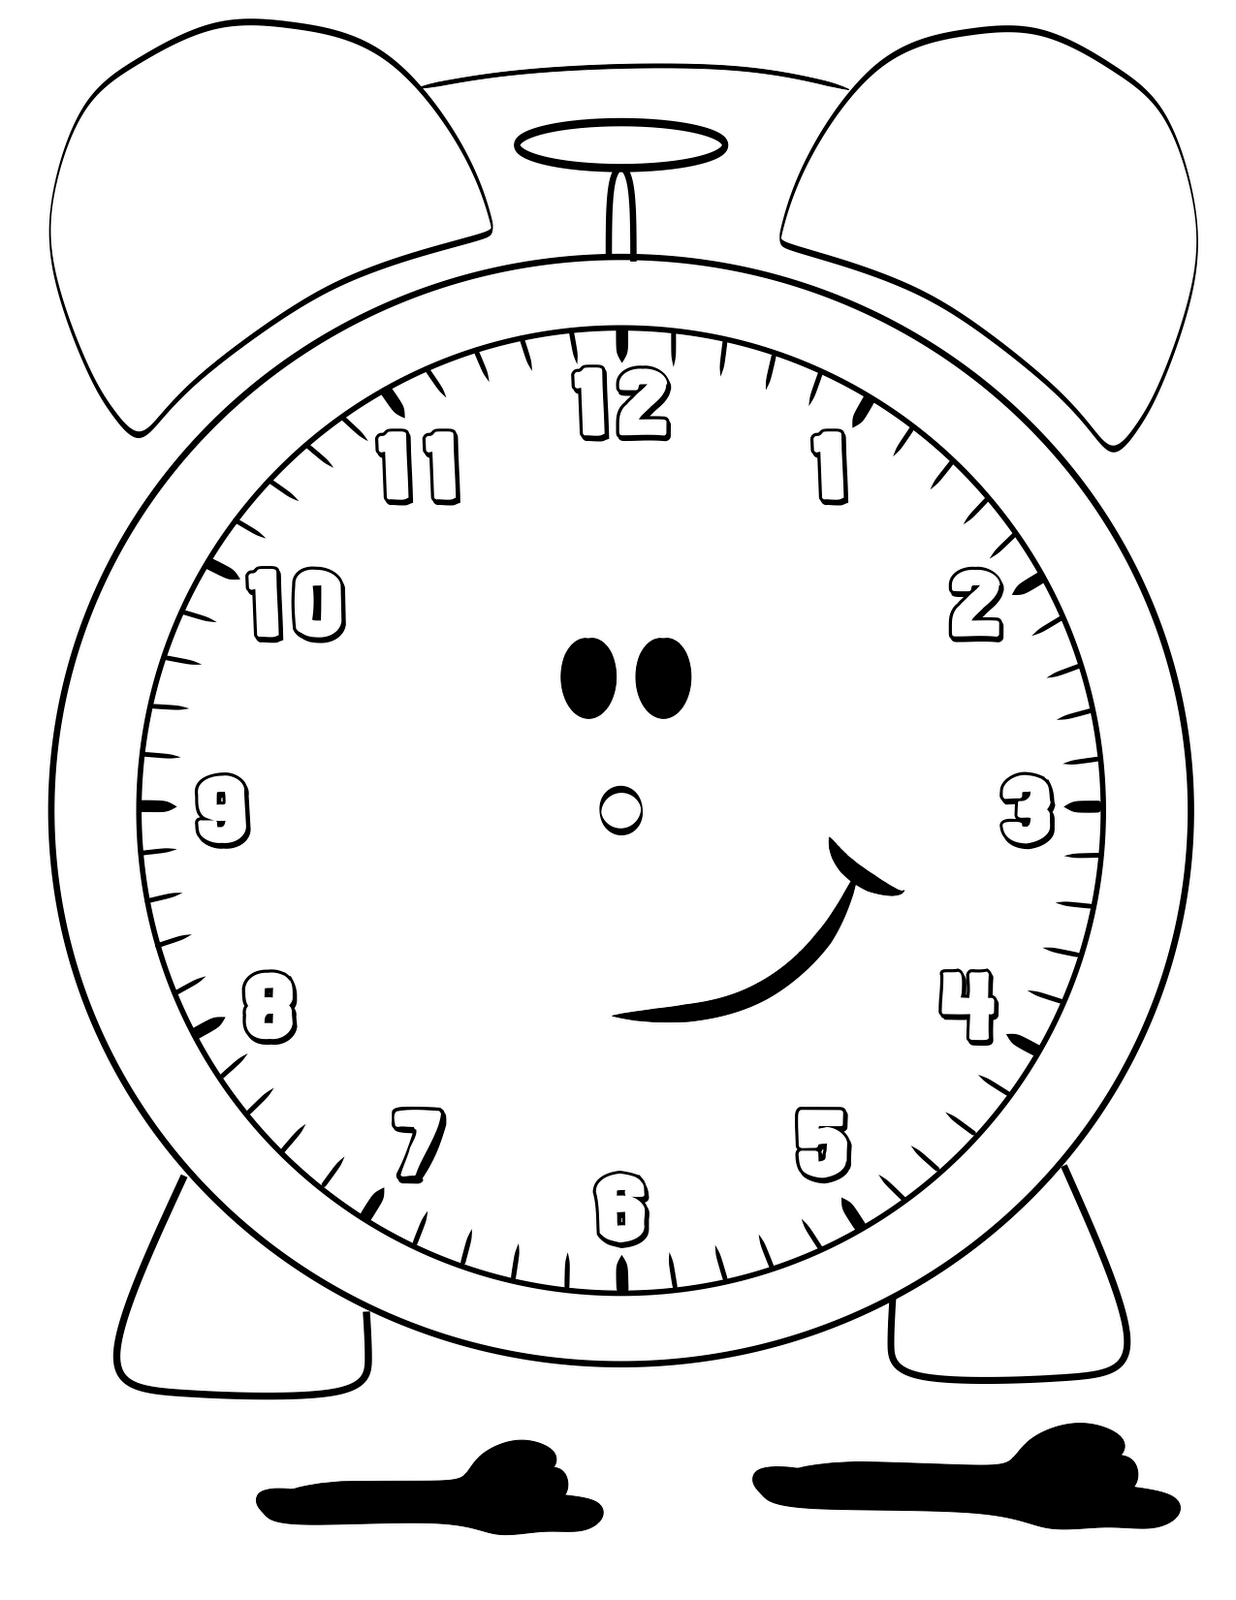 Worksheet Clock Printable free printable clock coloring pages for kids pages